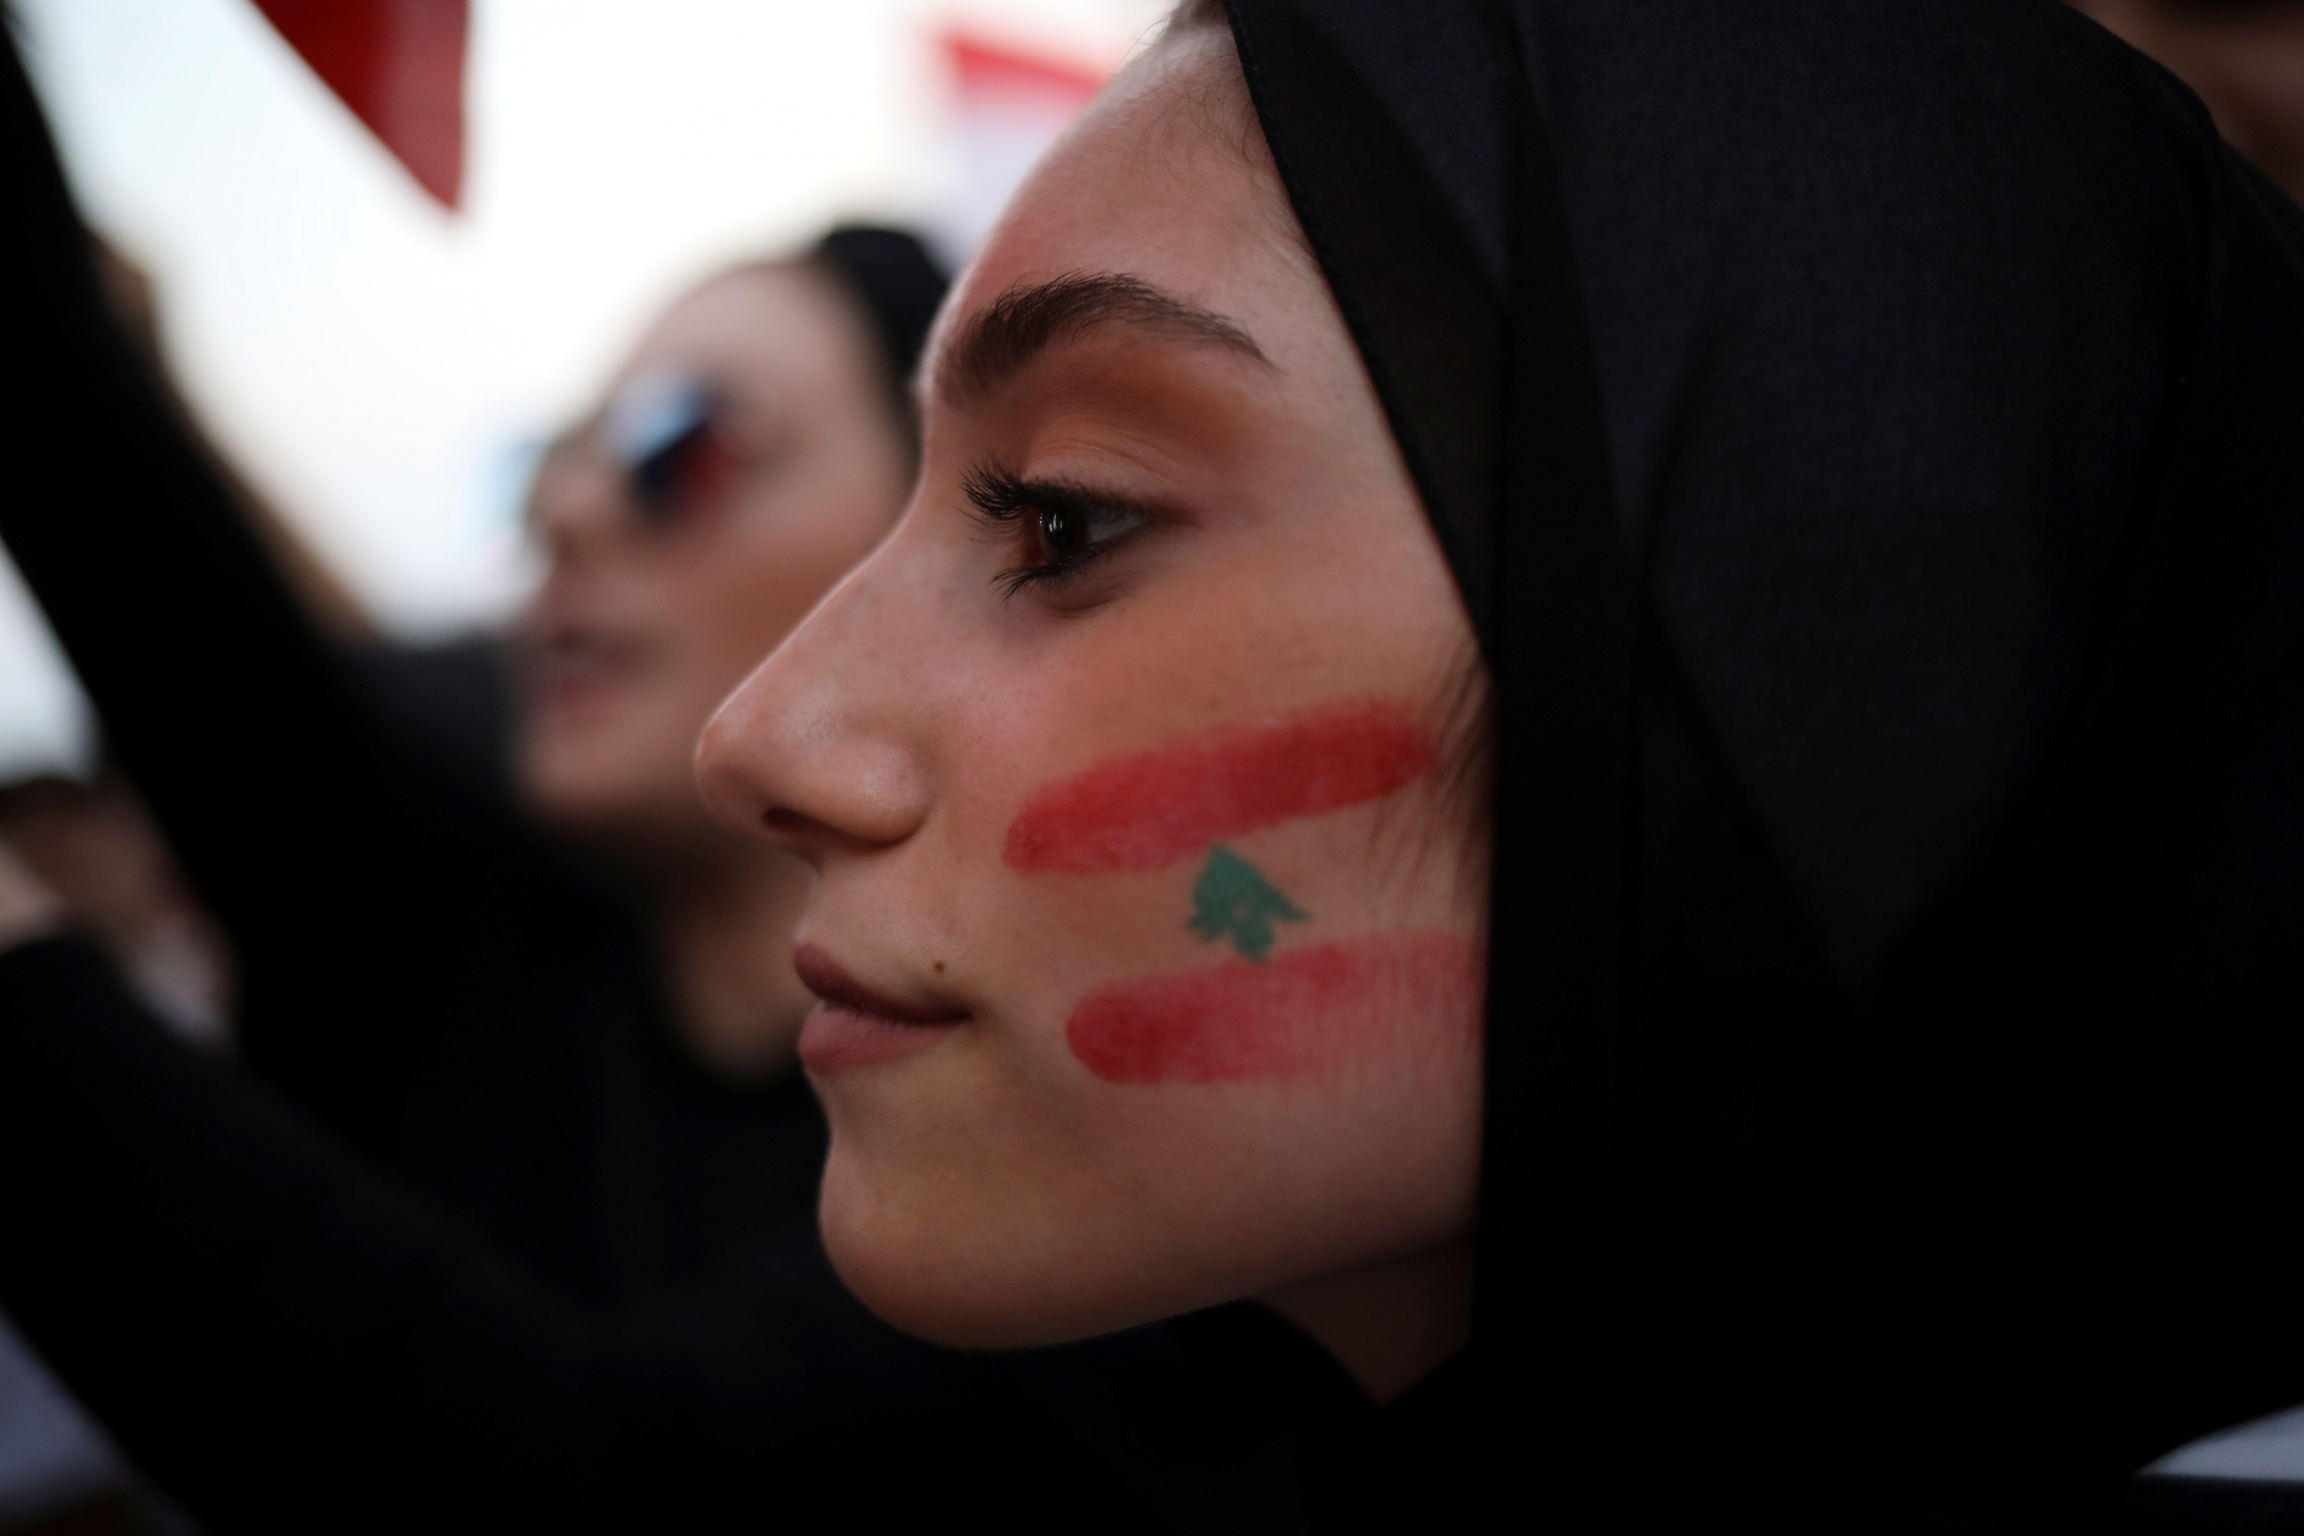 A demonstrator with a Lebanese national flag drawn on her face takes part in an anti-government protest in downtown Beirut, Lebanon, on October 22, 2019